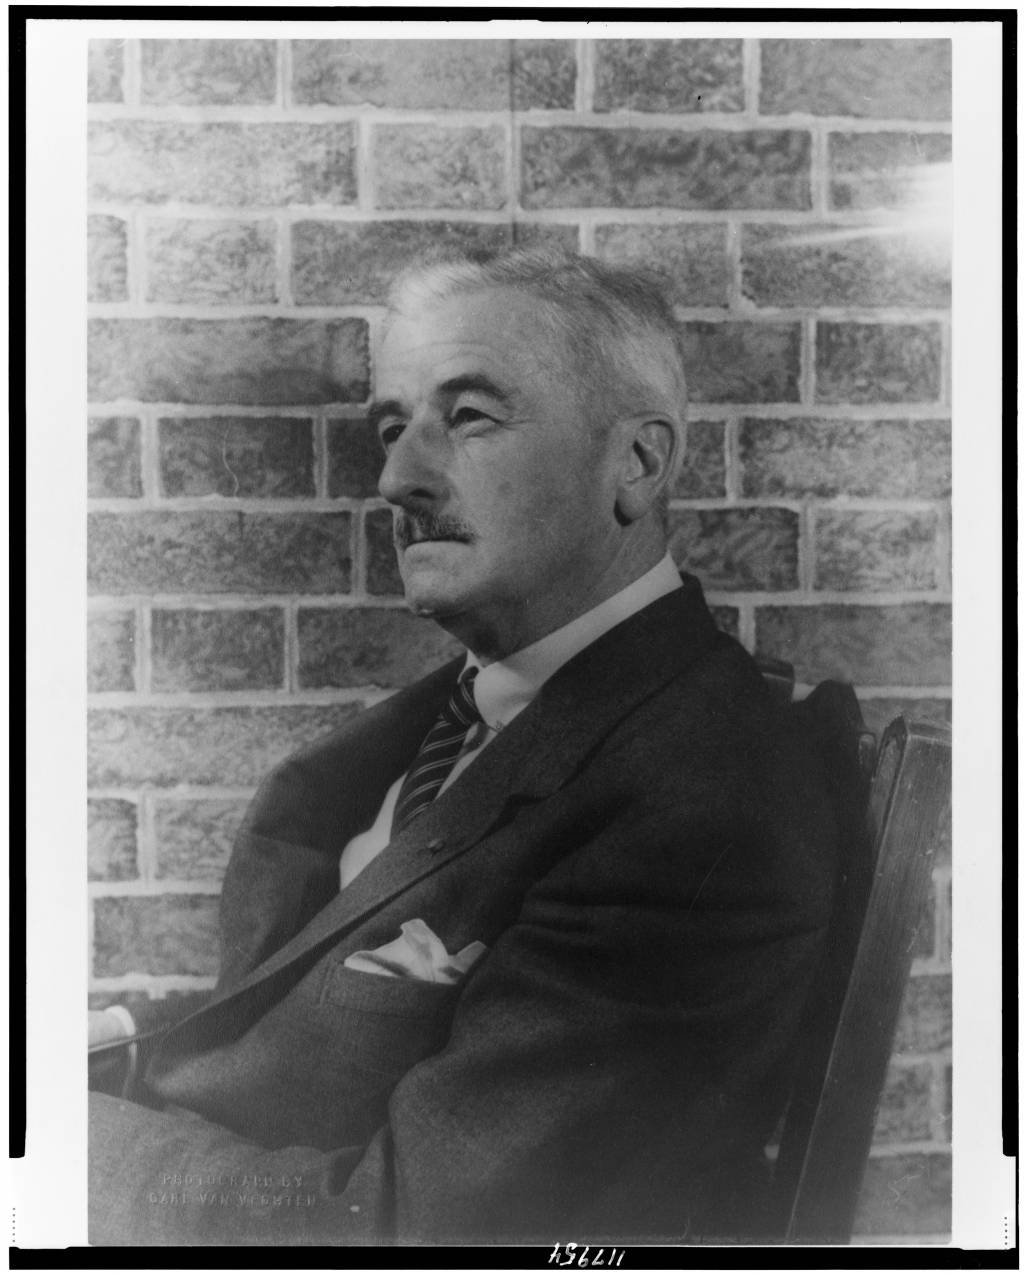 william faulkner essay William faulkner – barn burning by lauren bradshaw  sample research papers, william faulkner ← good reasons to buy term papers exxon valdez oil spill .